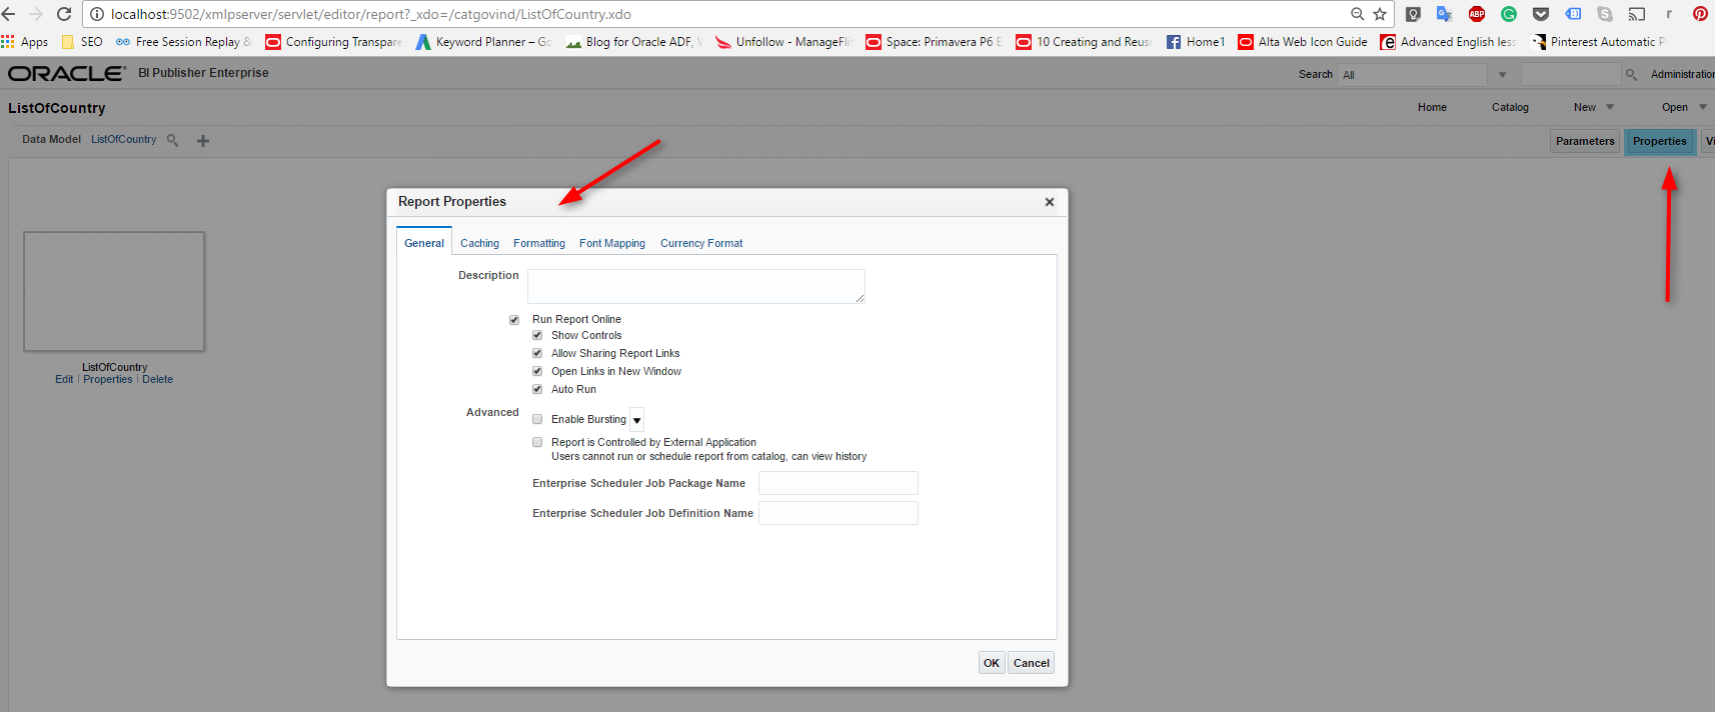 How To Configure Bi Publisher Runtime Properties This Section We